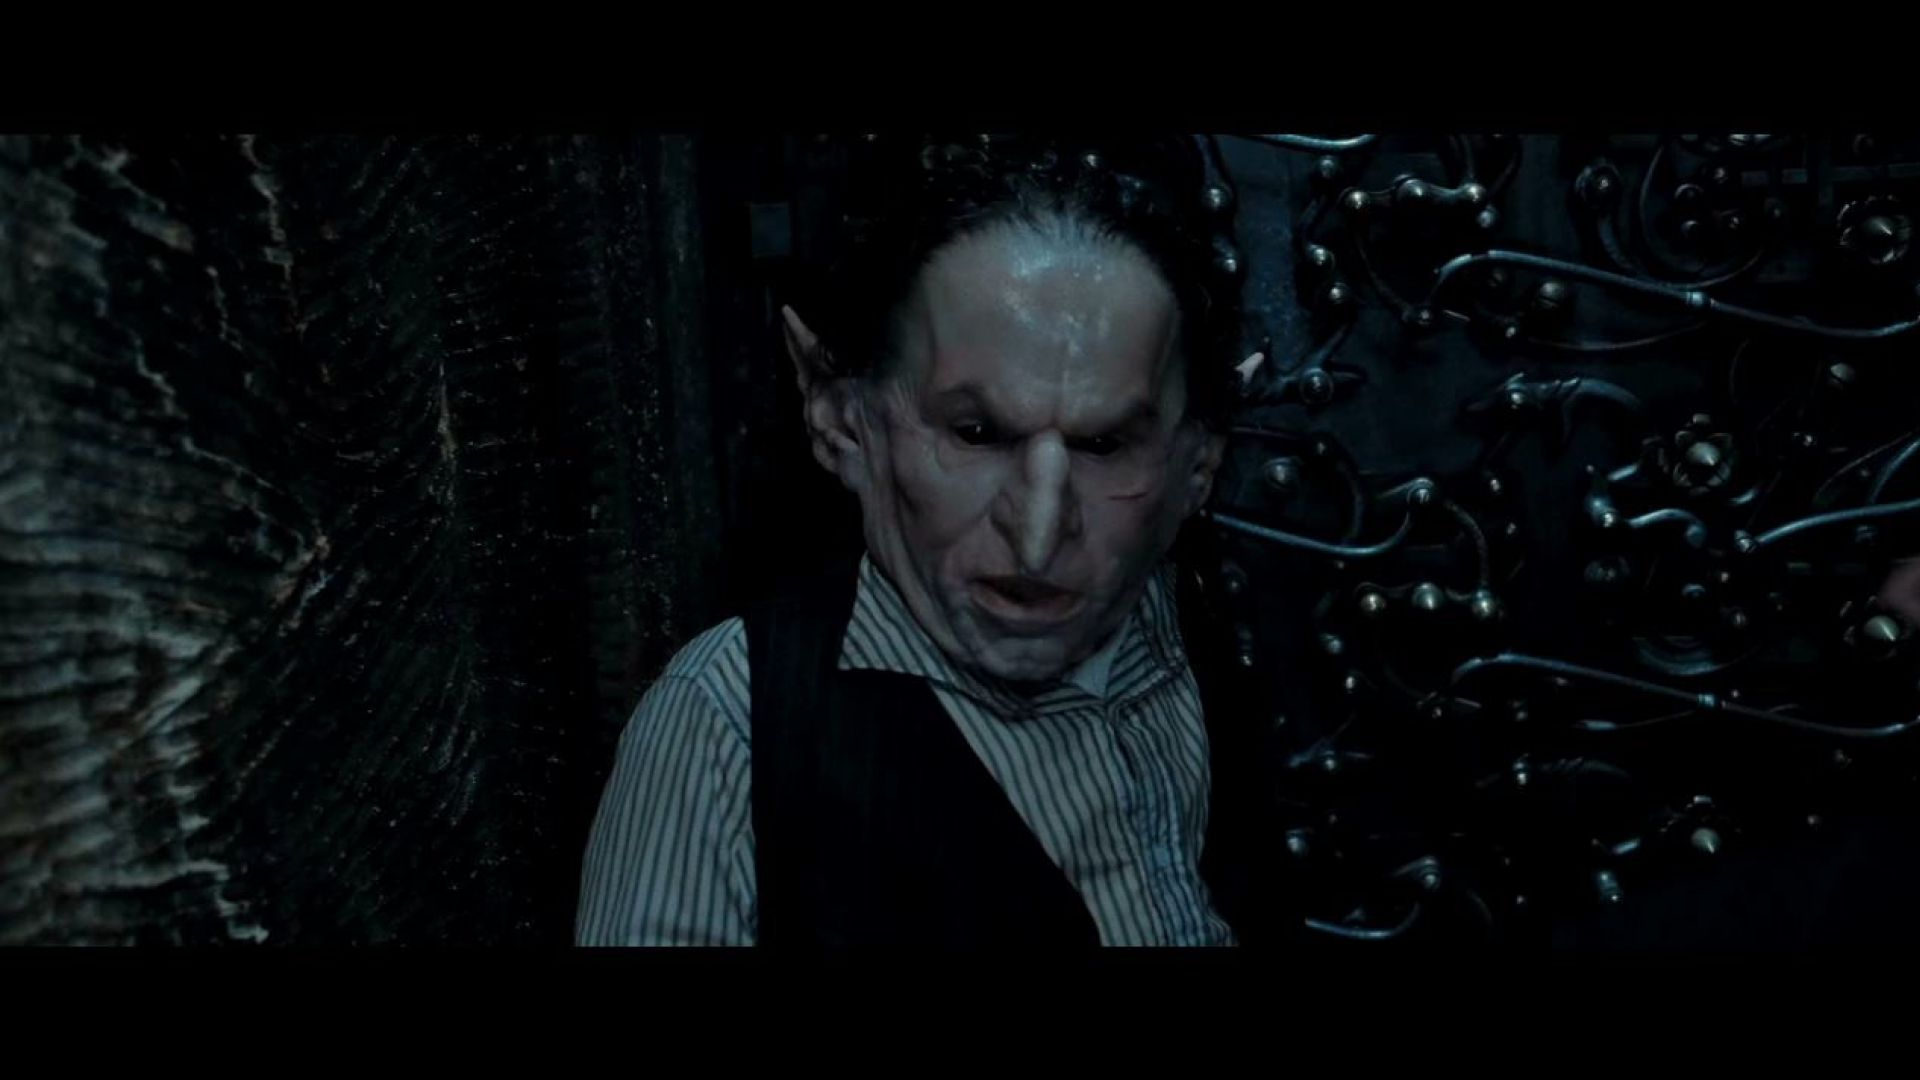 The Gemino curse will multiply everything. Harry Potter 7 Part 2